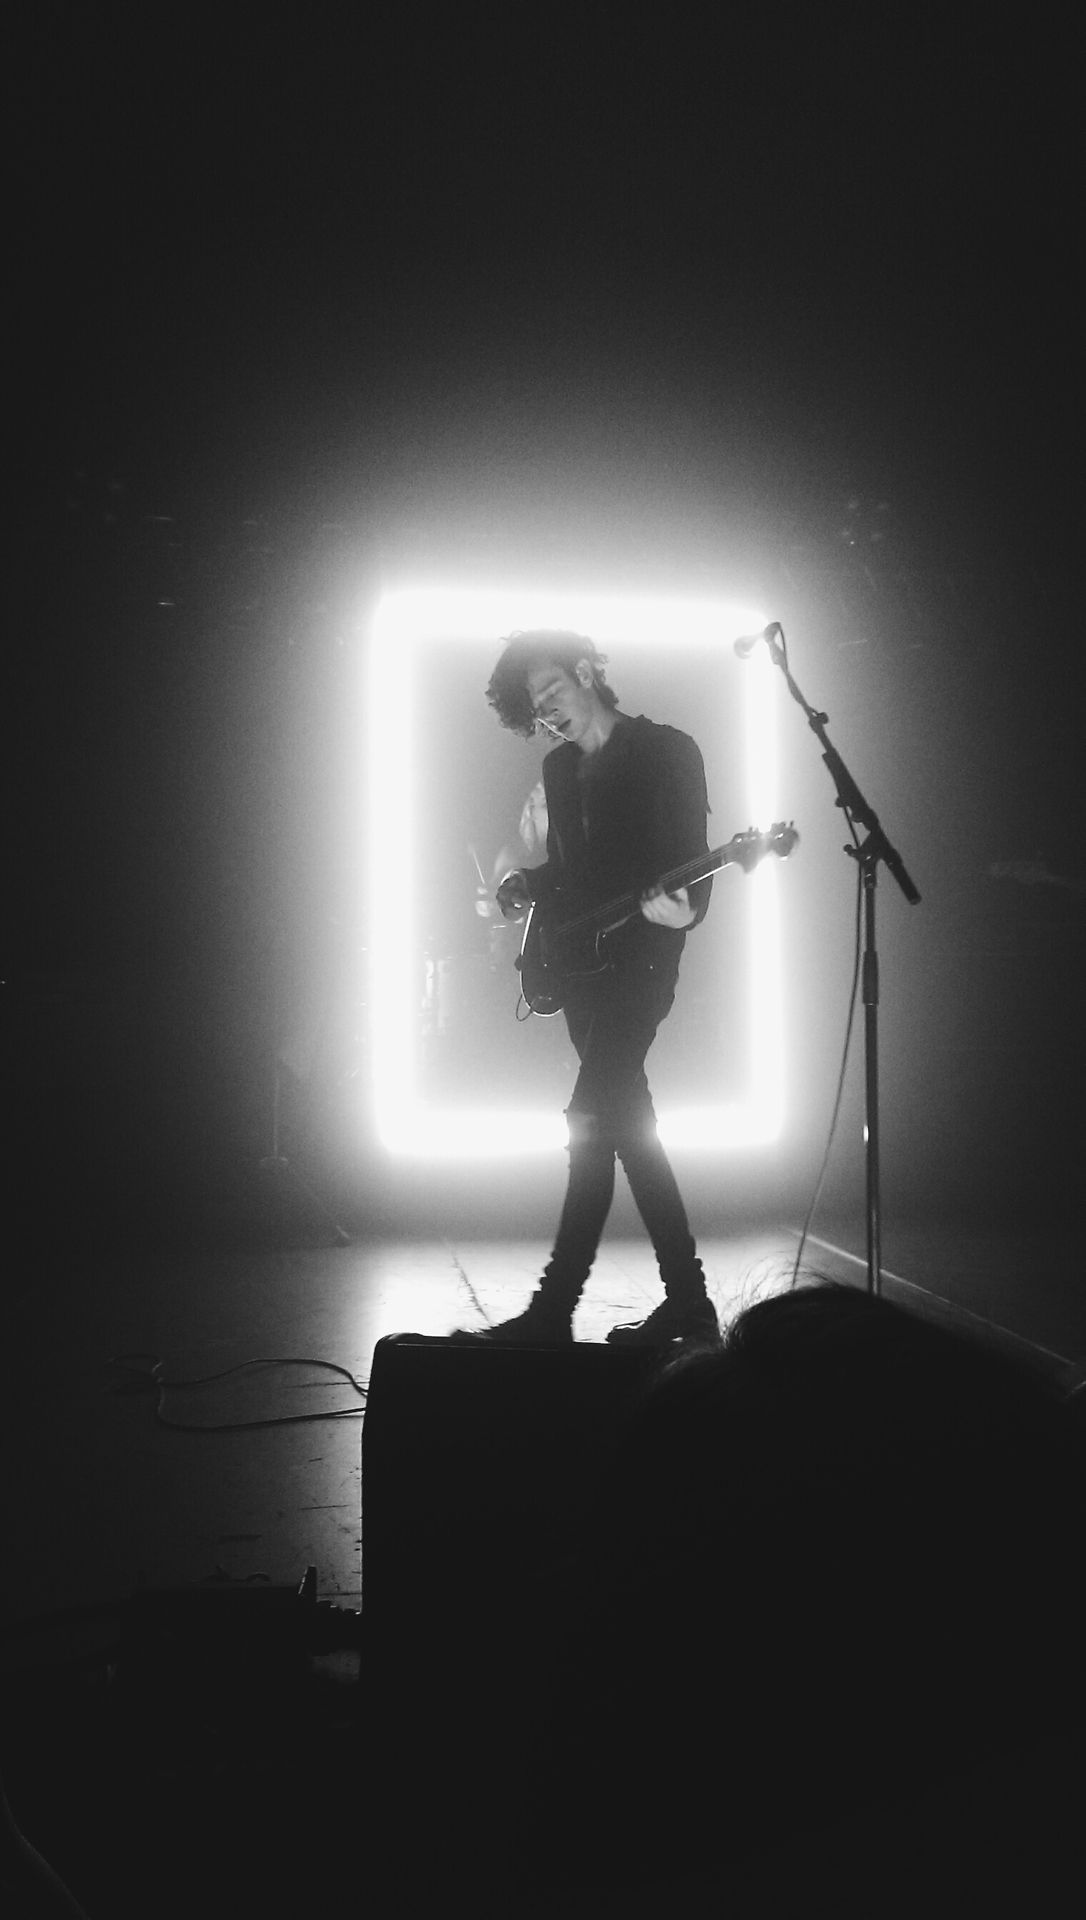 pinterest ashtonsexton Music The 1975 wallpaper The 1975 1086x1920